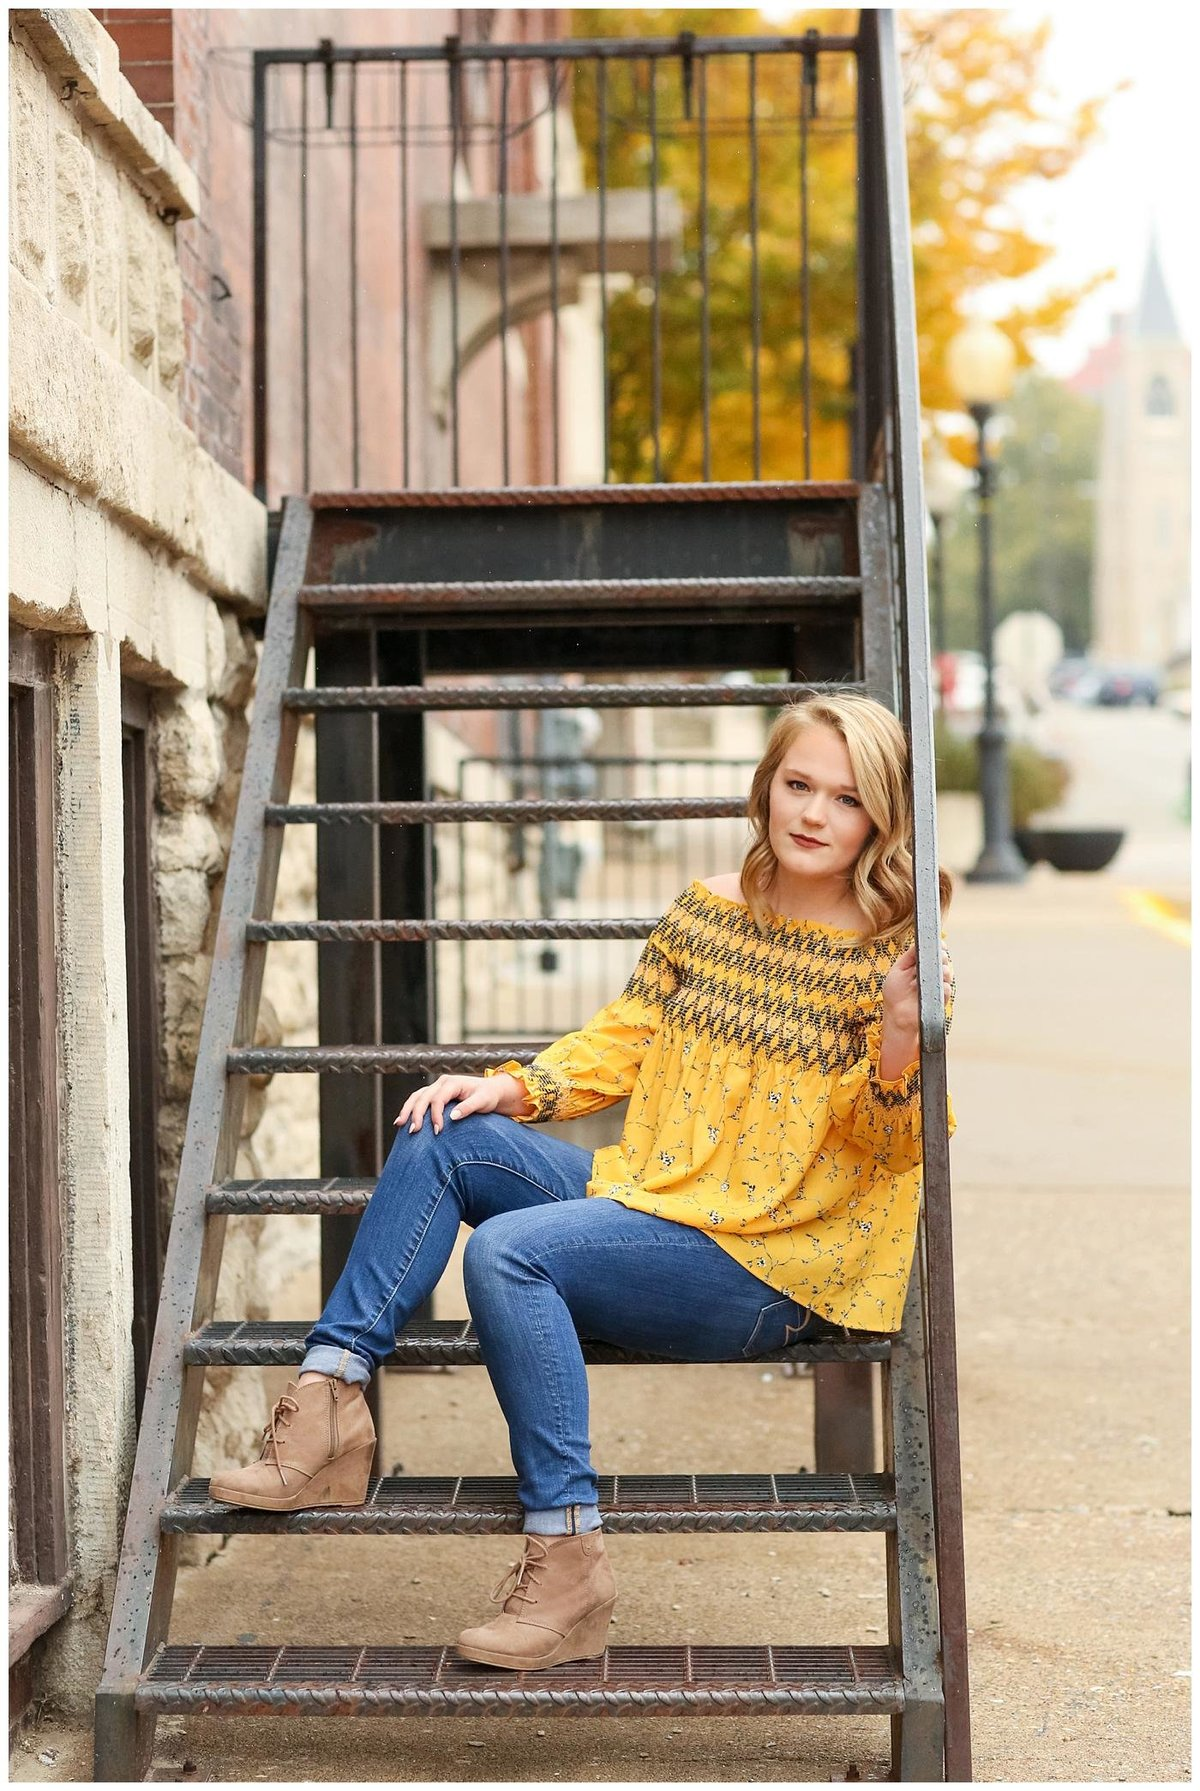 Central Illinois Senior Photographer | Macomb, IL Senior Photographer |  Creative Touch Photography_4835